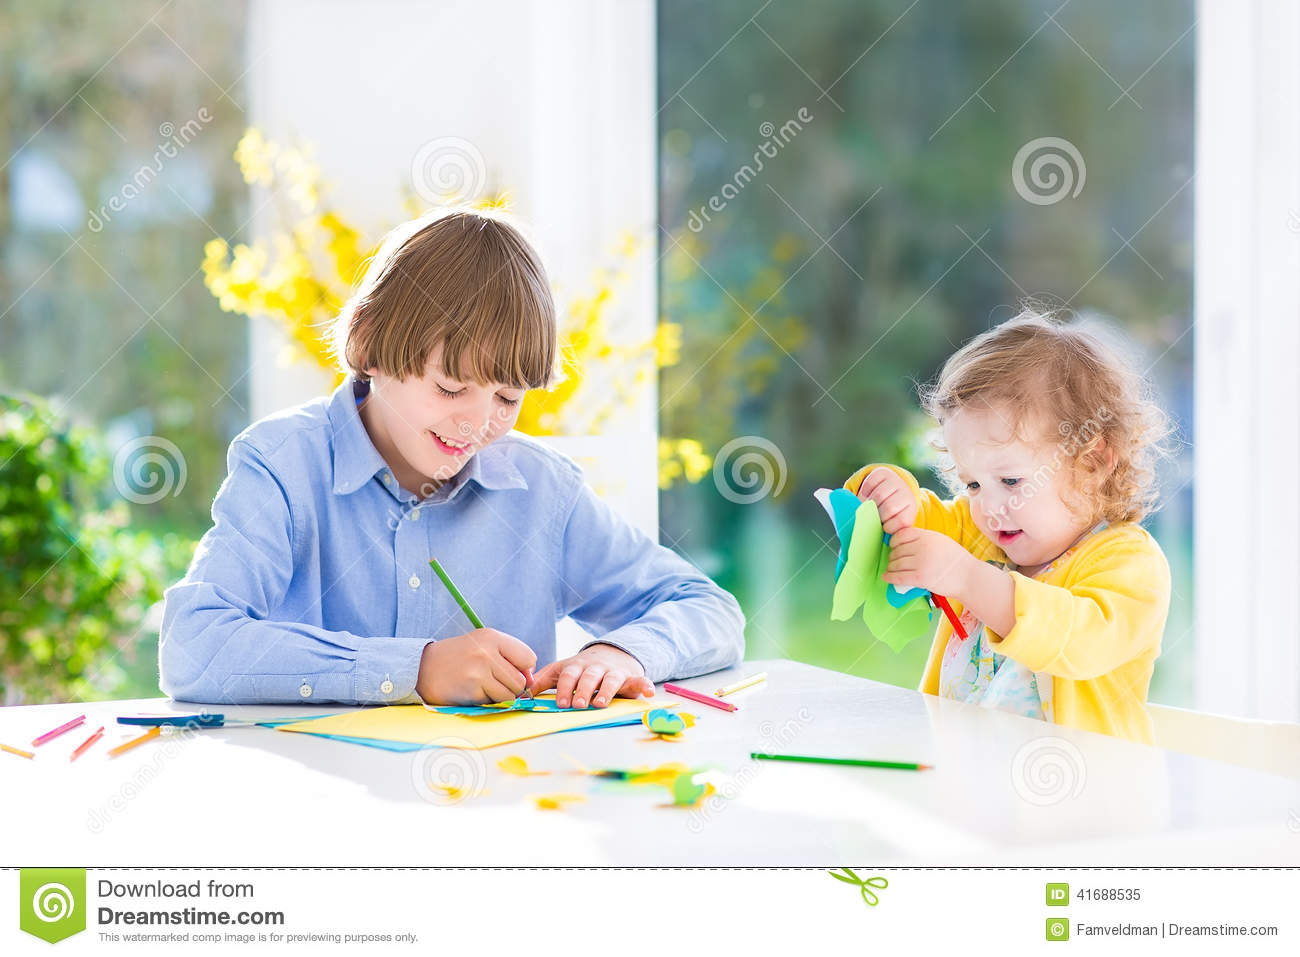 Kids Craft Drawing Family